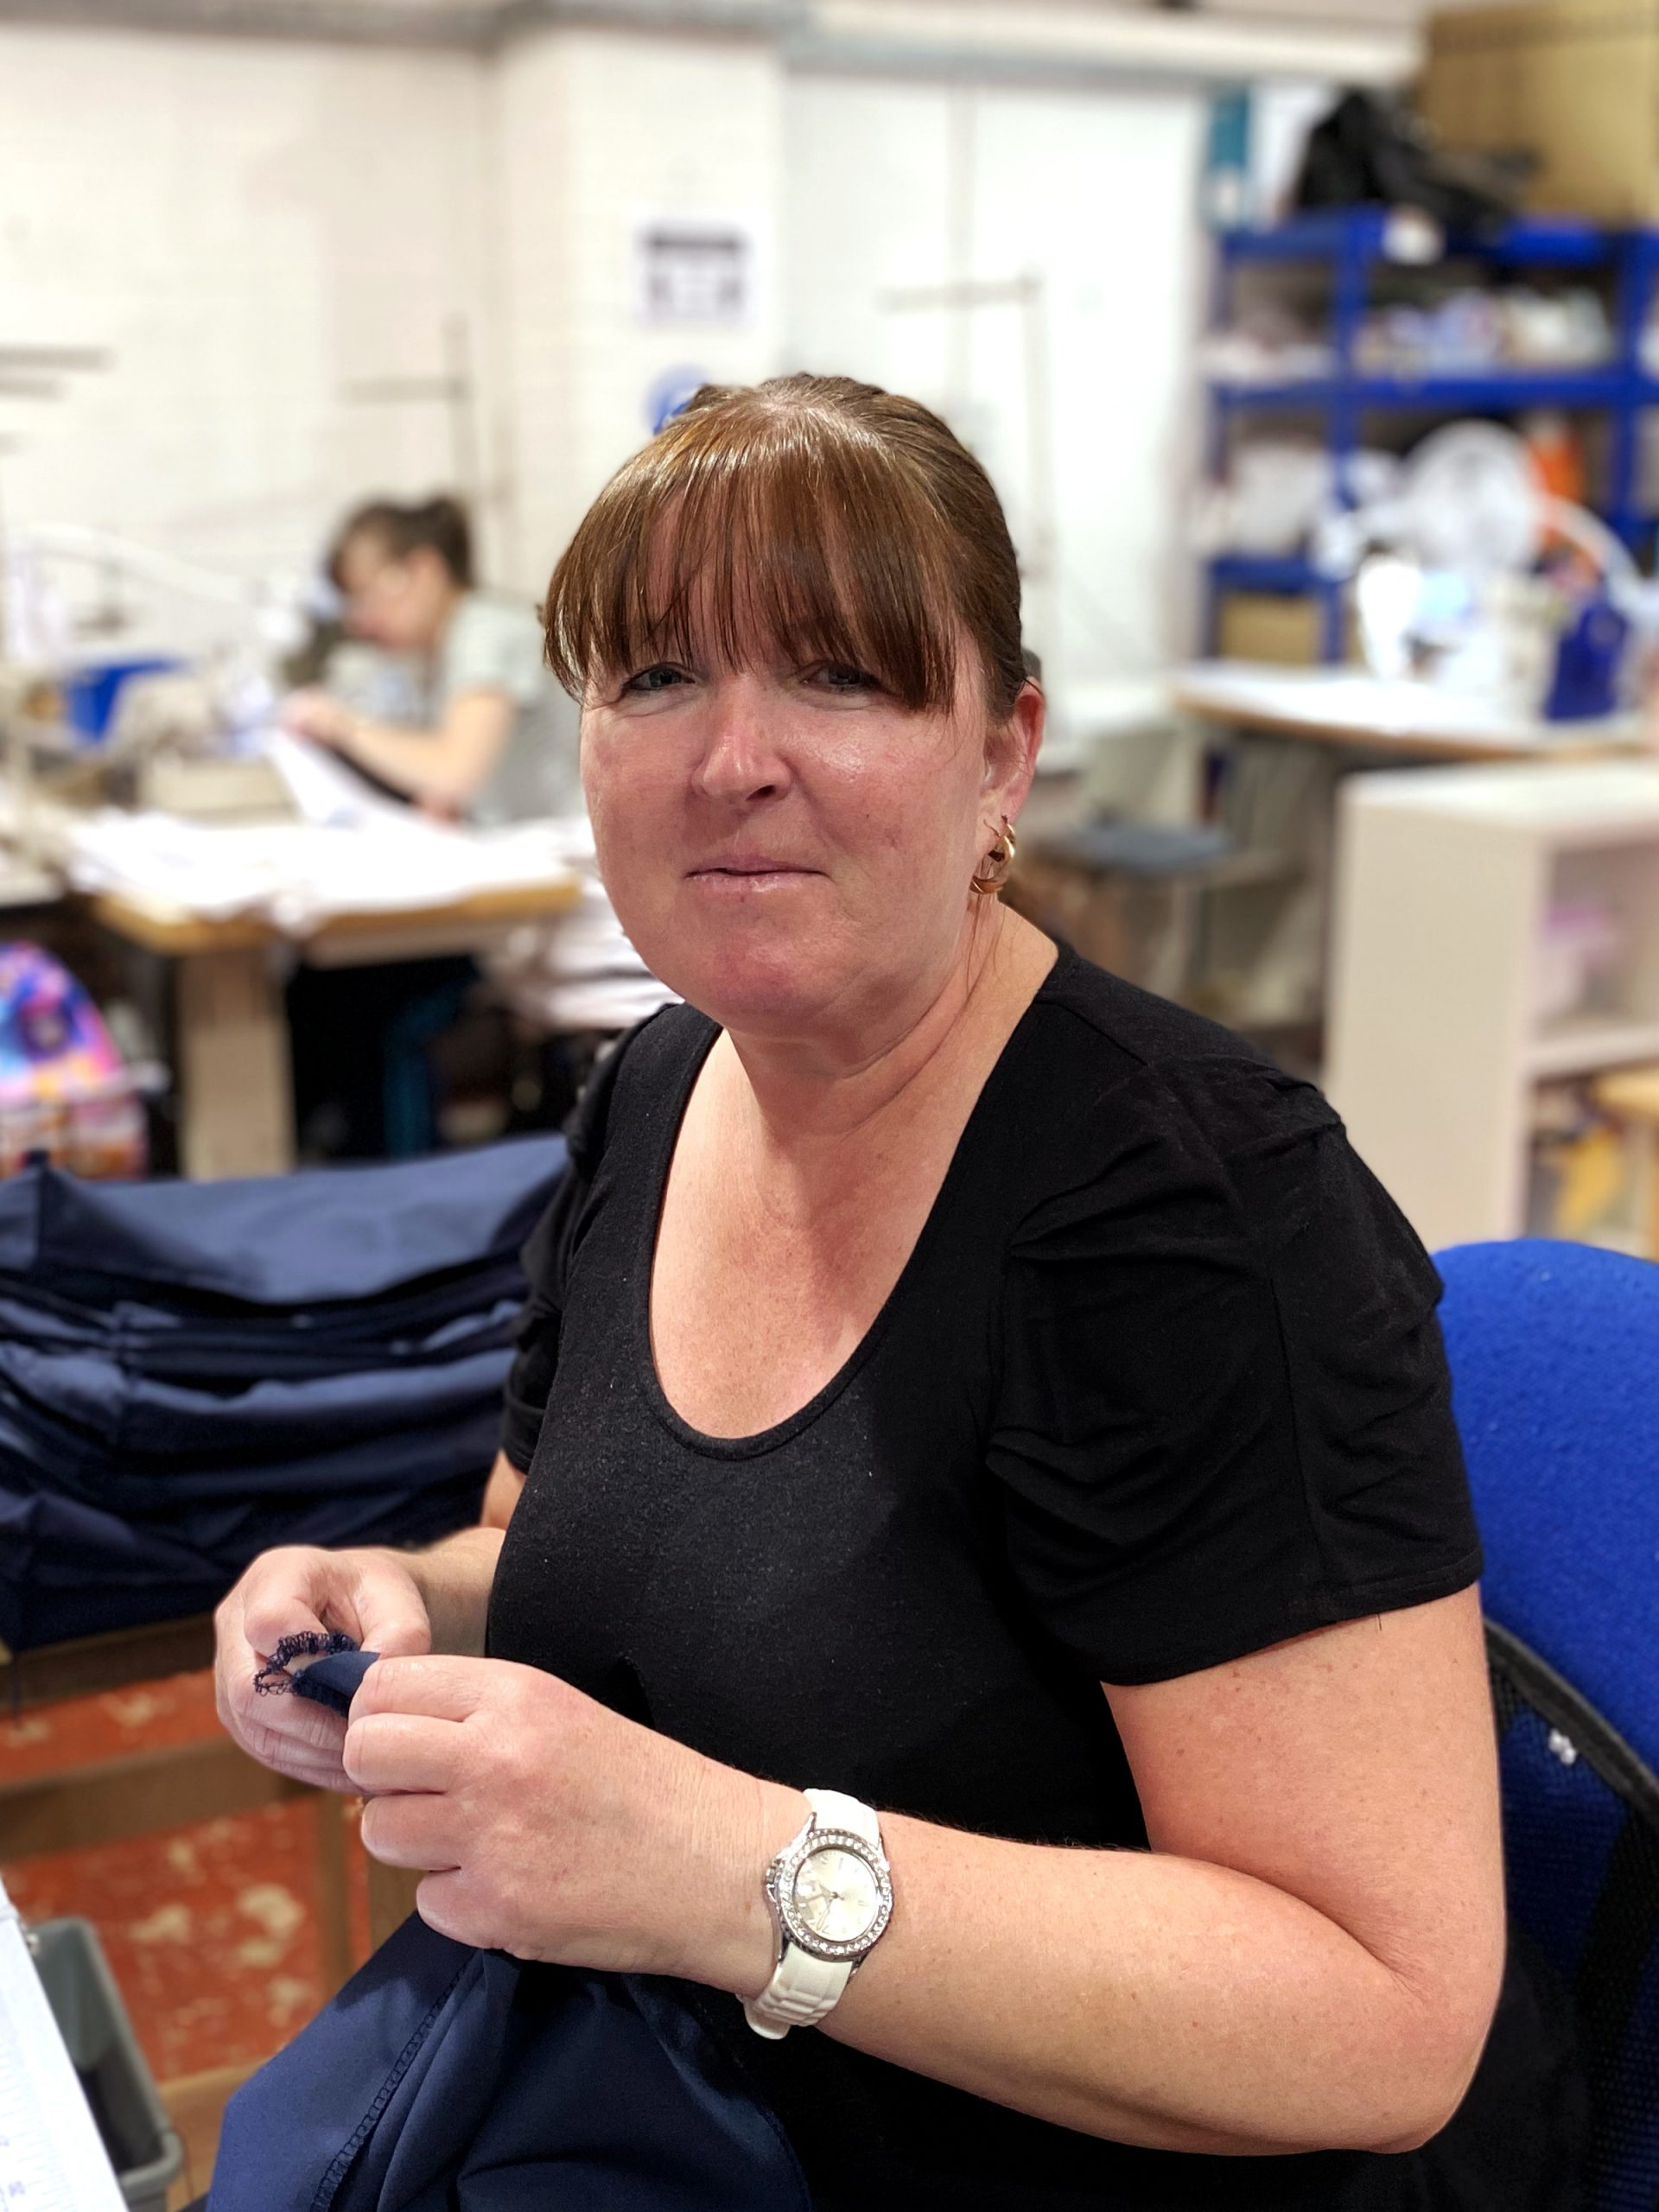 Sharon sitting in the sewing department, wrexham, UK